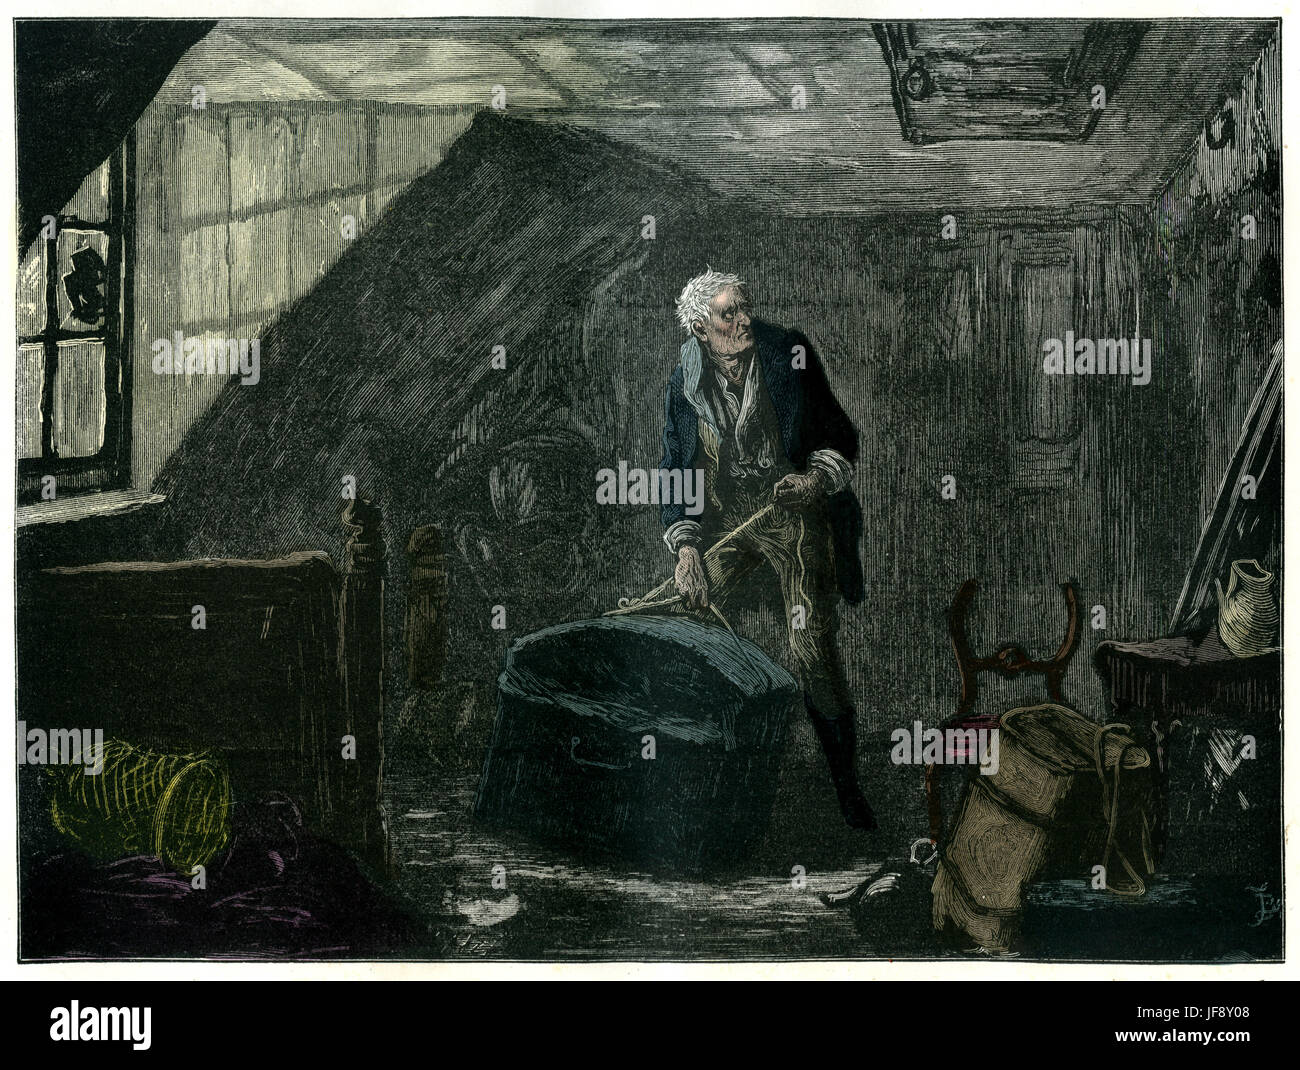 Nicholas Nickleby, novel by Charles Dickens (7 February 1812 – 9 June 1870). Chapter 62: Ralph makes one last appointment. - Stock Image